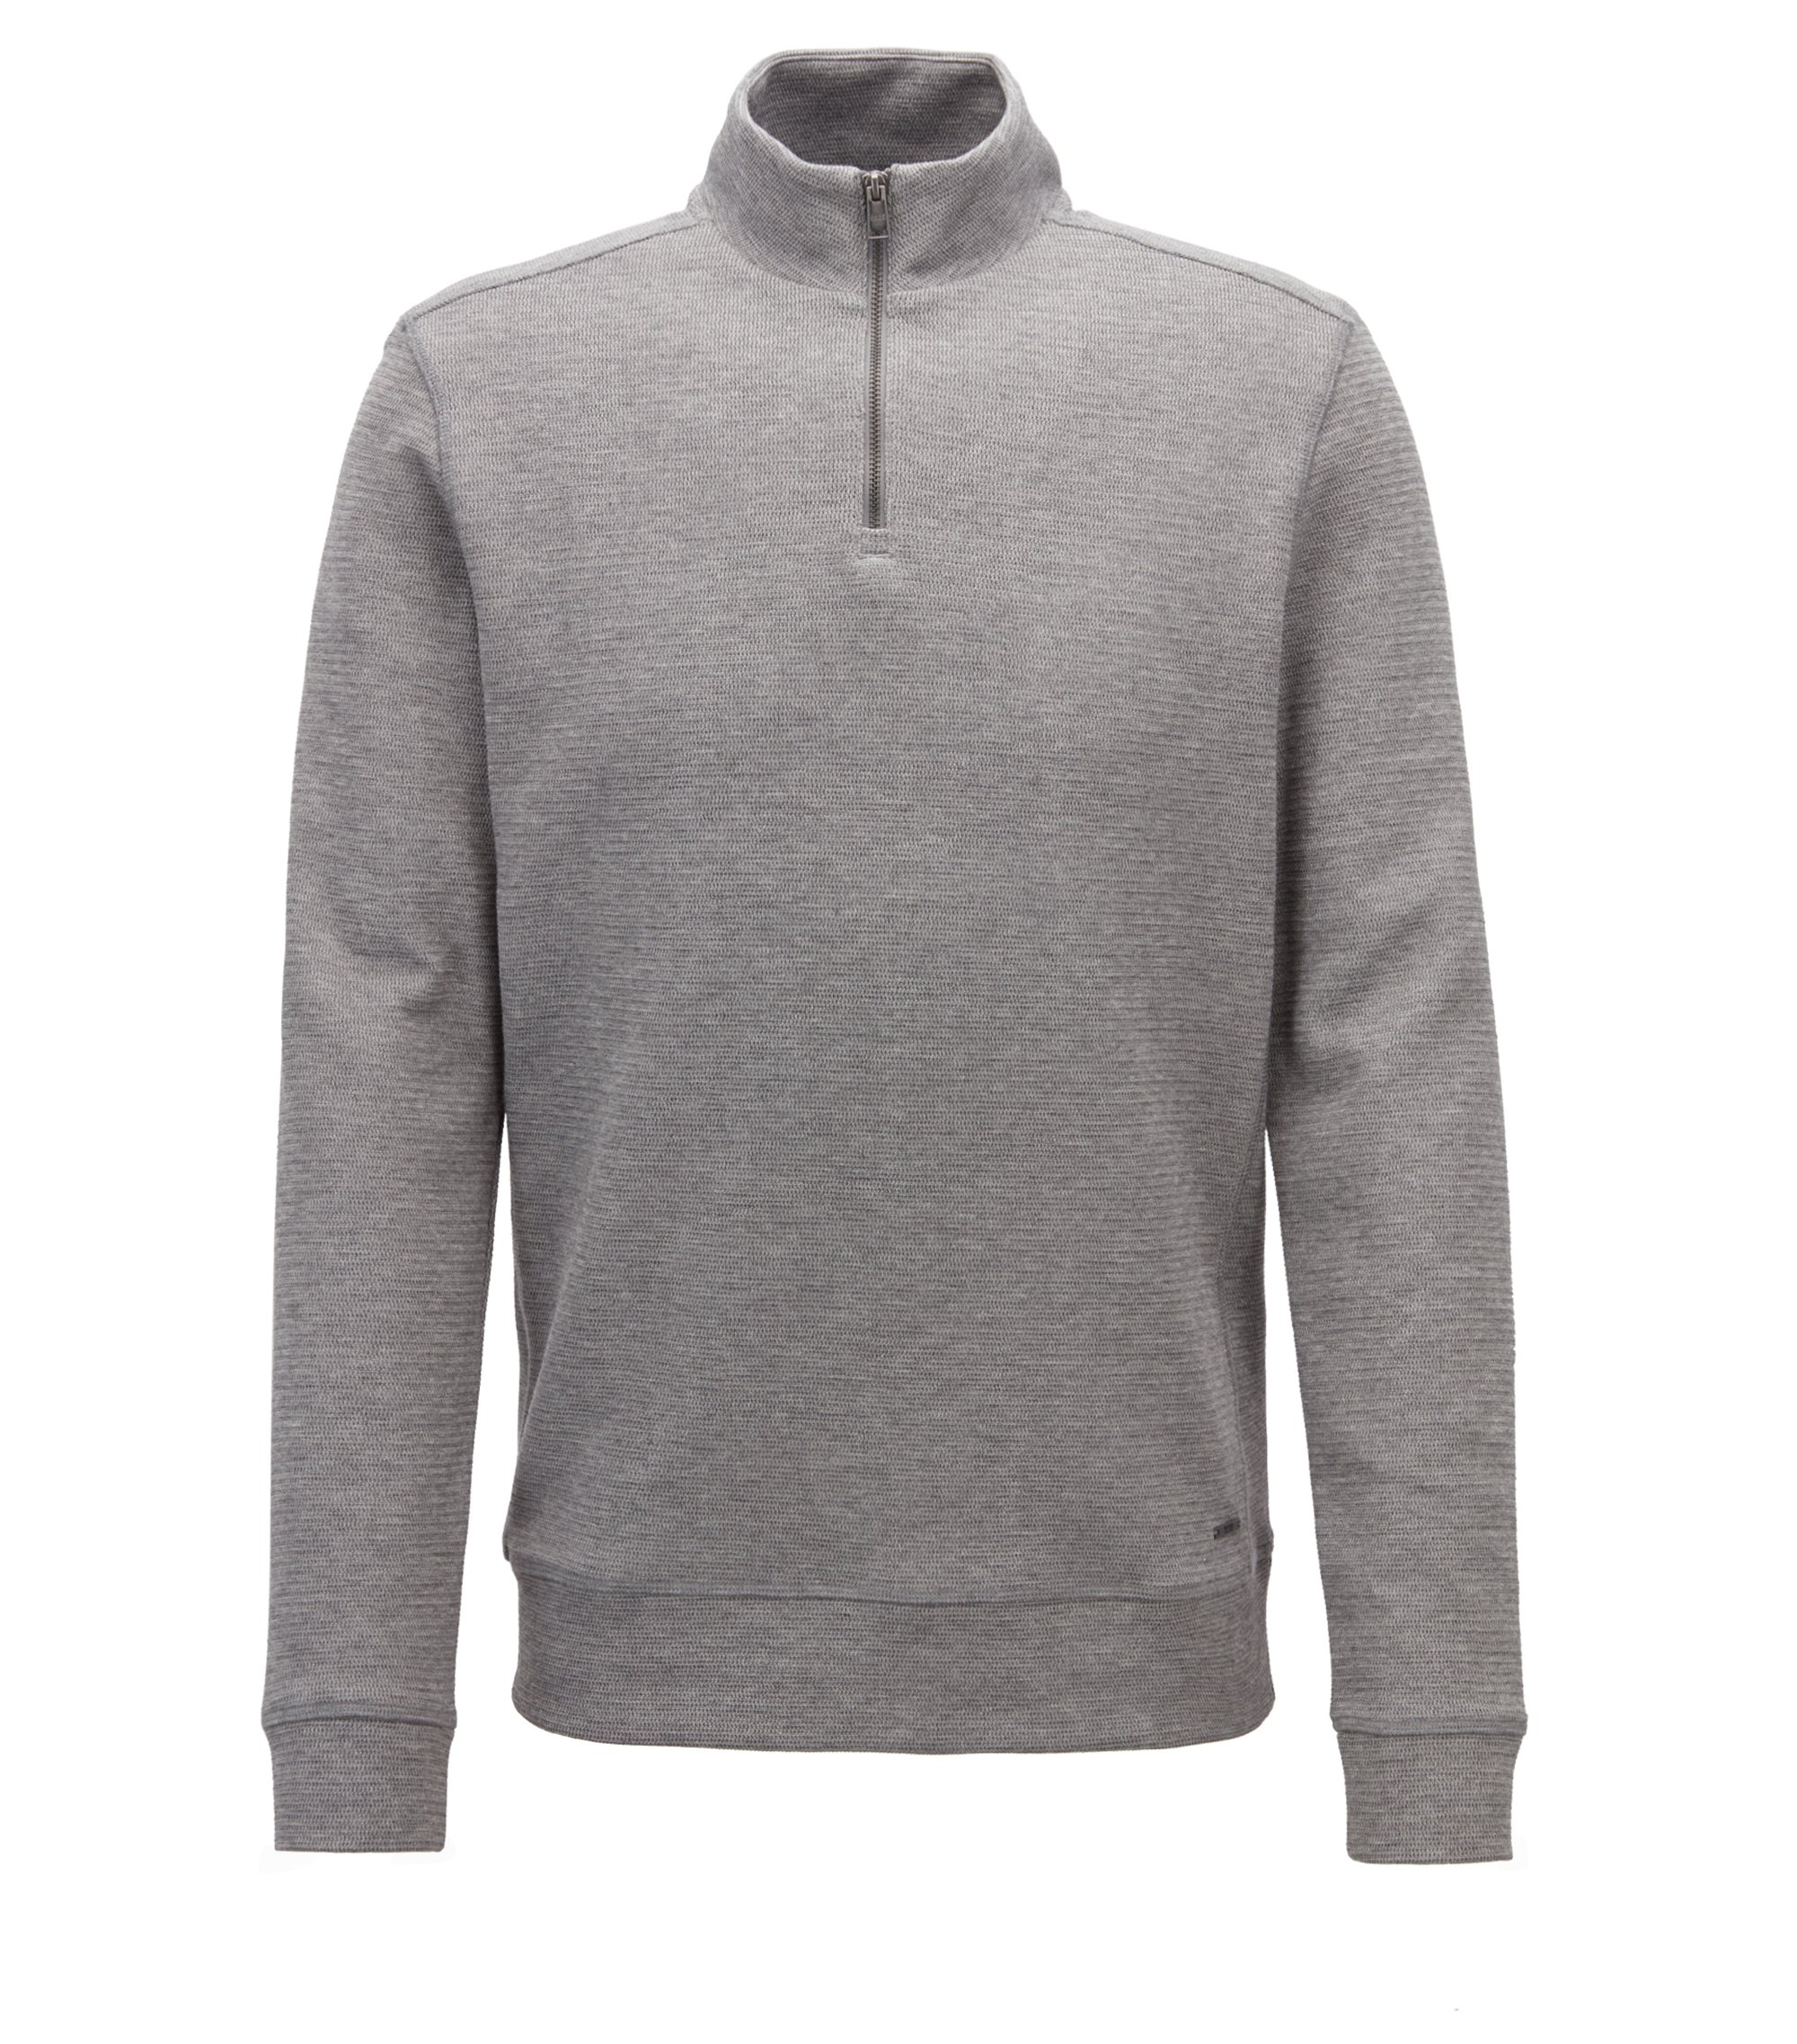 Zip-neck sweatshirt in two-tone cotton-blend jacquard, Grey